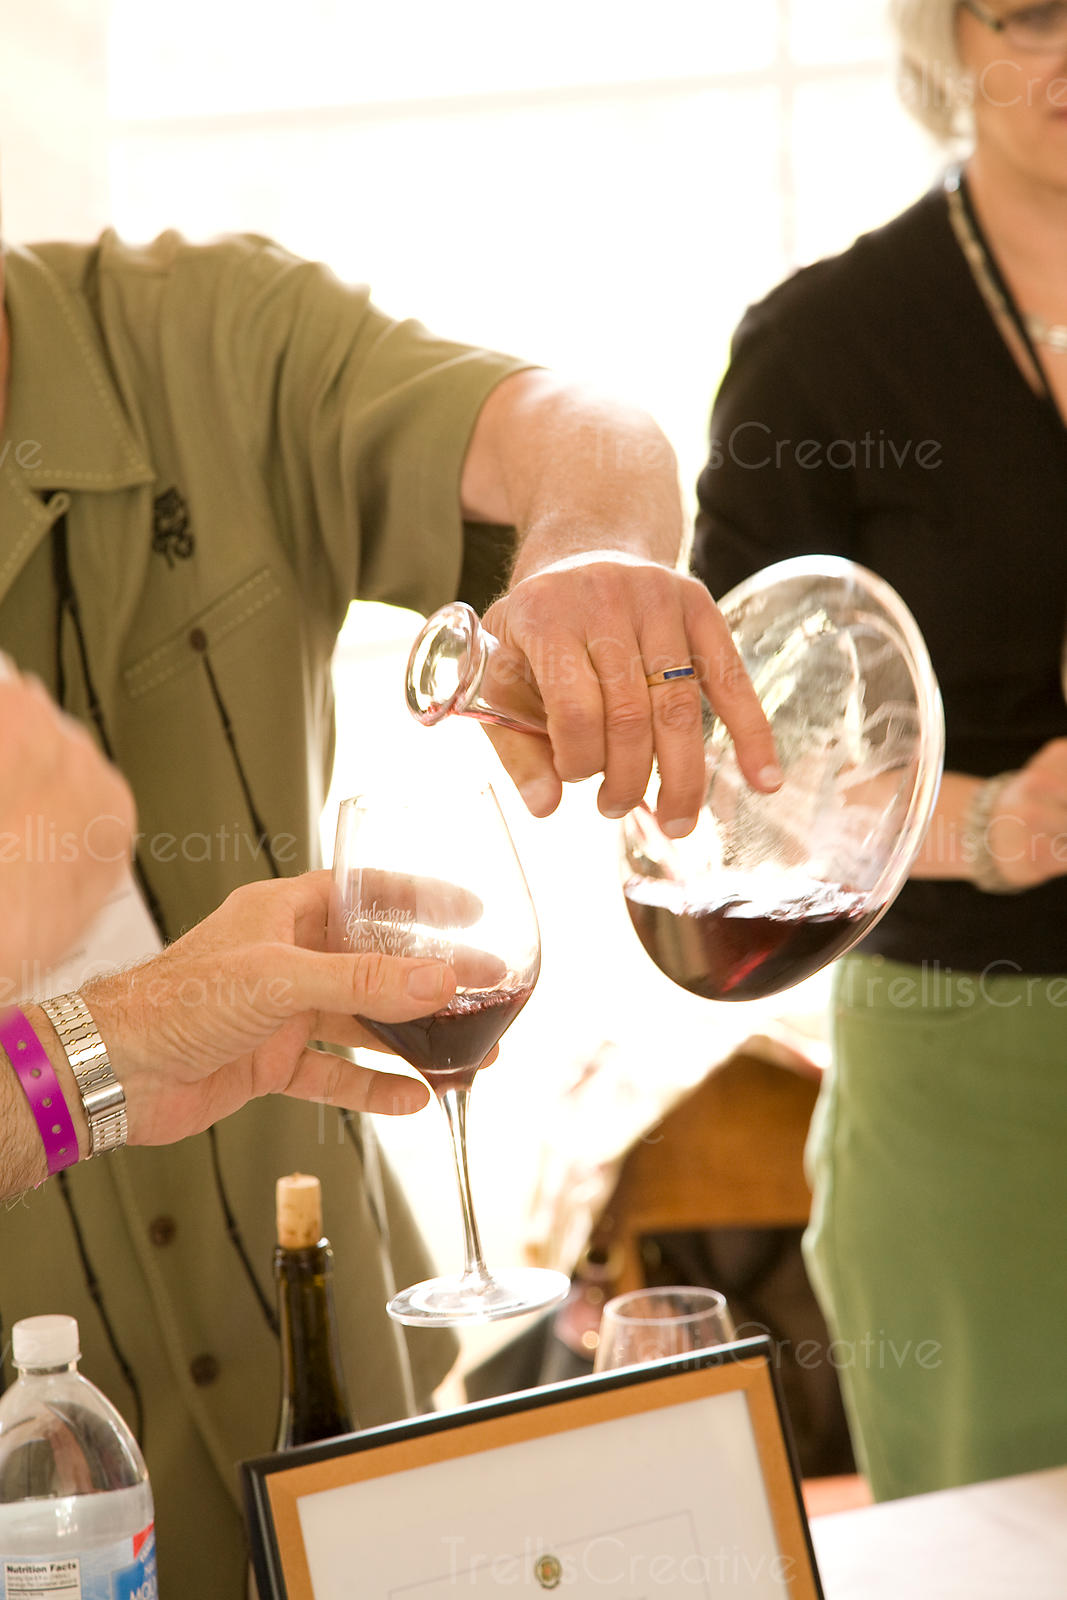 Pouring decanted red wine into a glass